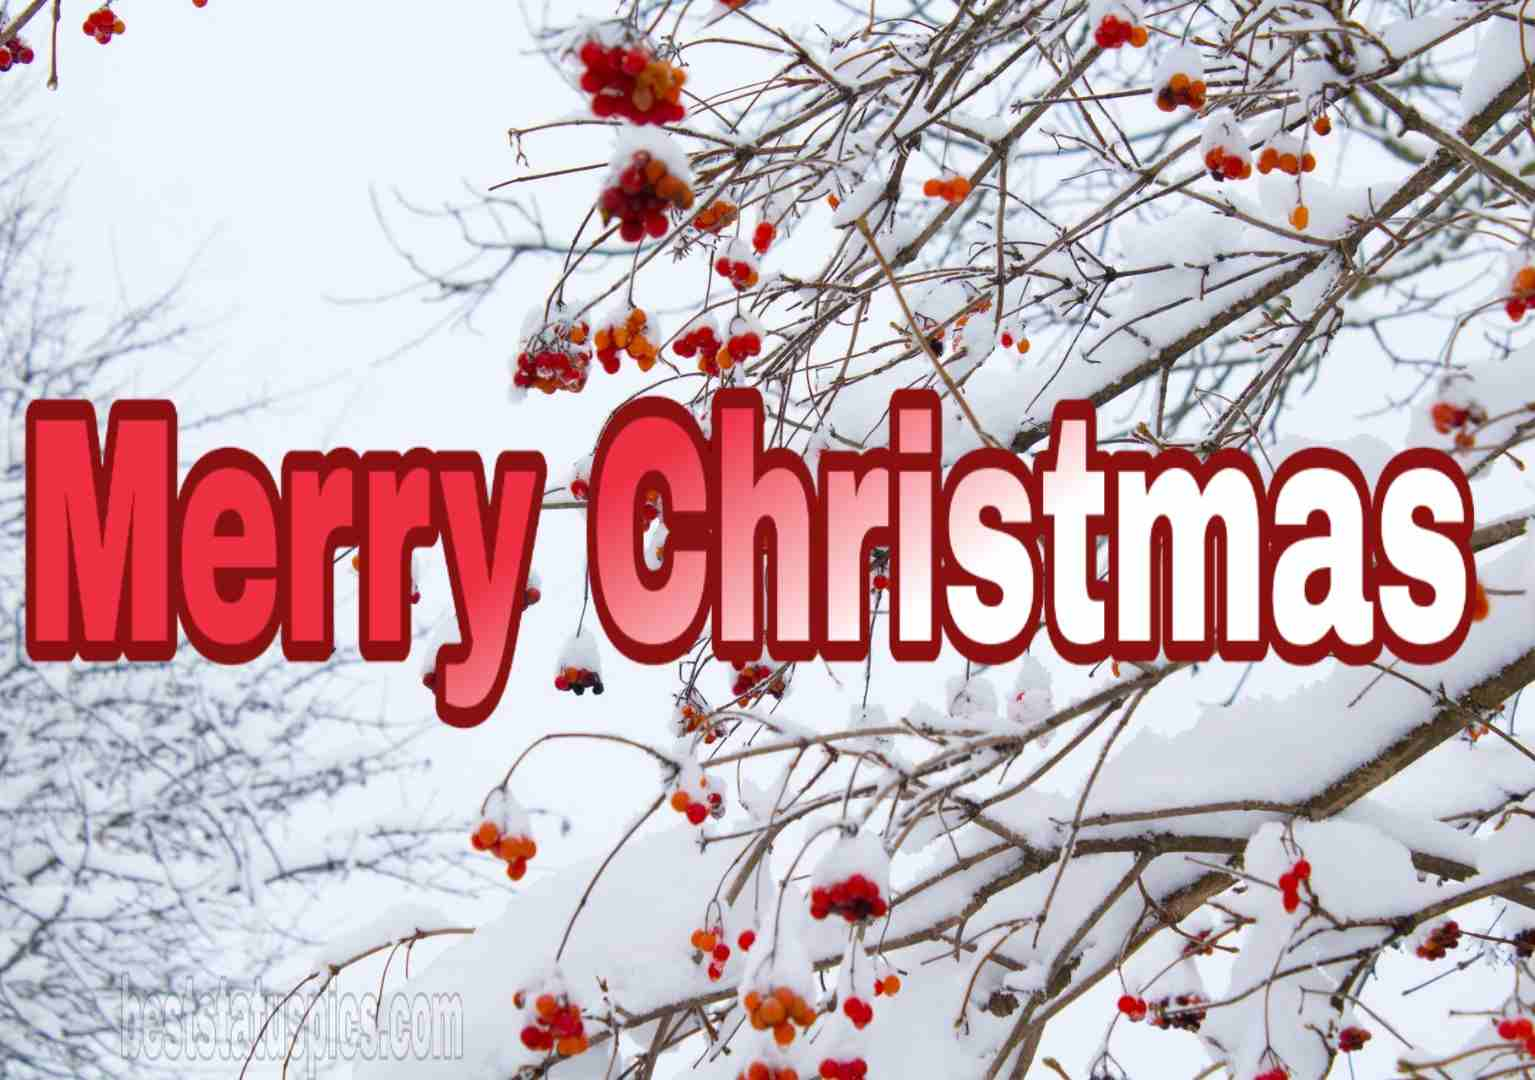 Best Merry Christmas wishes 2019 Greeting